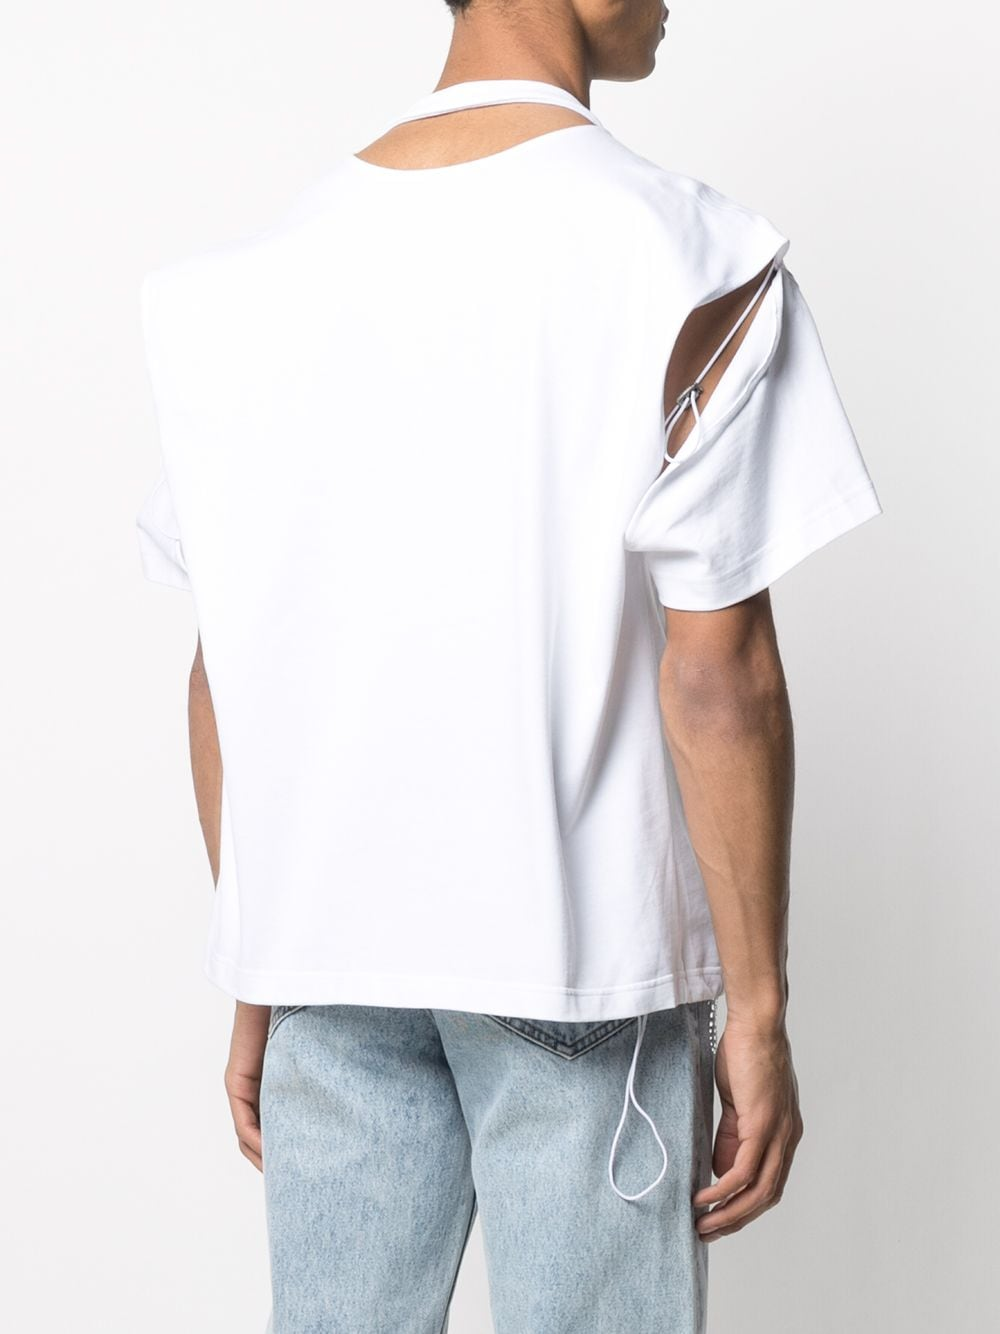 Y/PROJECT UNISEX CONVERTIBLE T-SHIRT